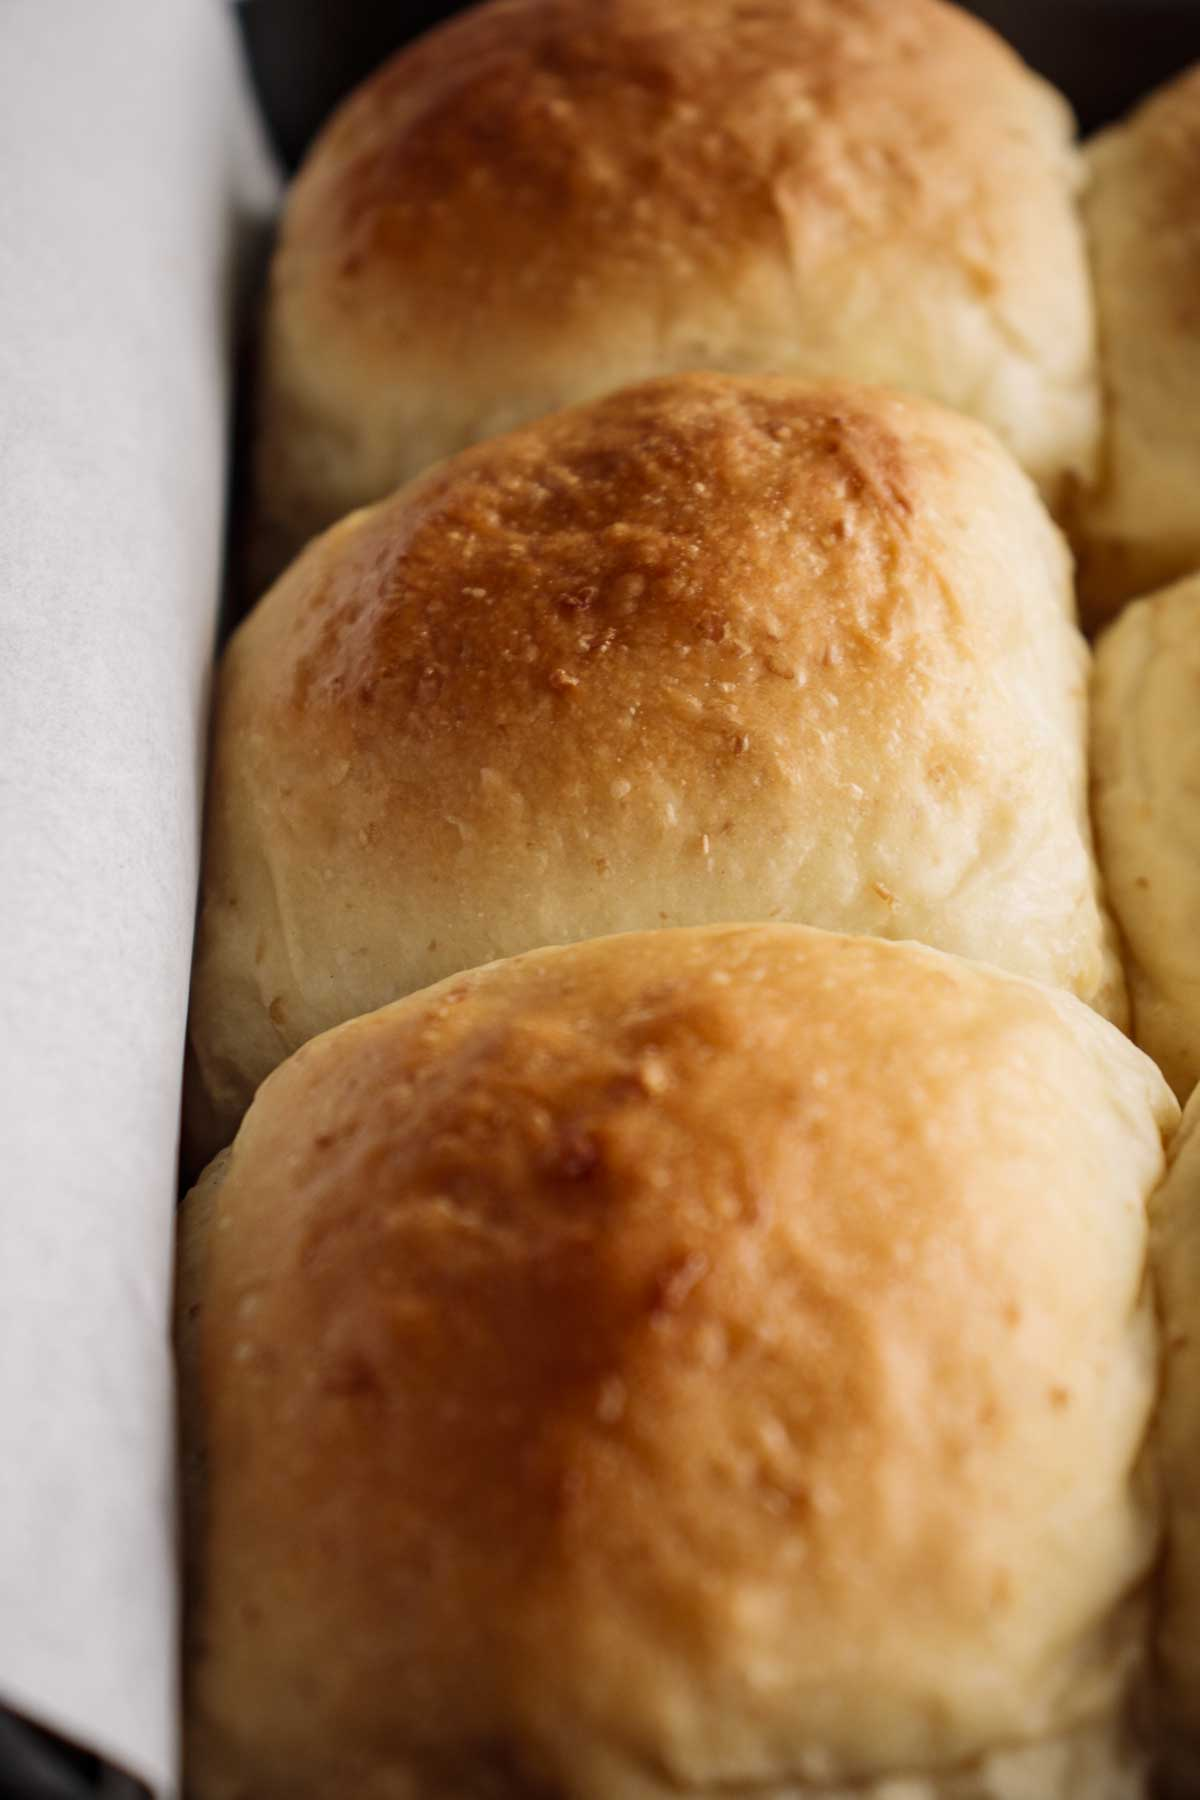 Close up on baked rolls, showing their soft crust.